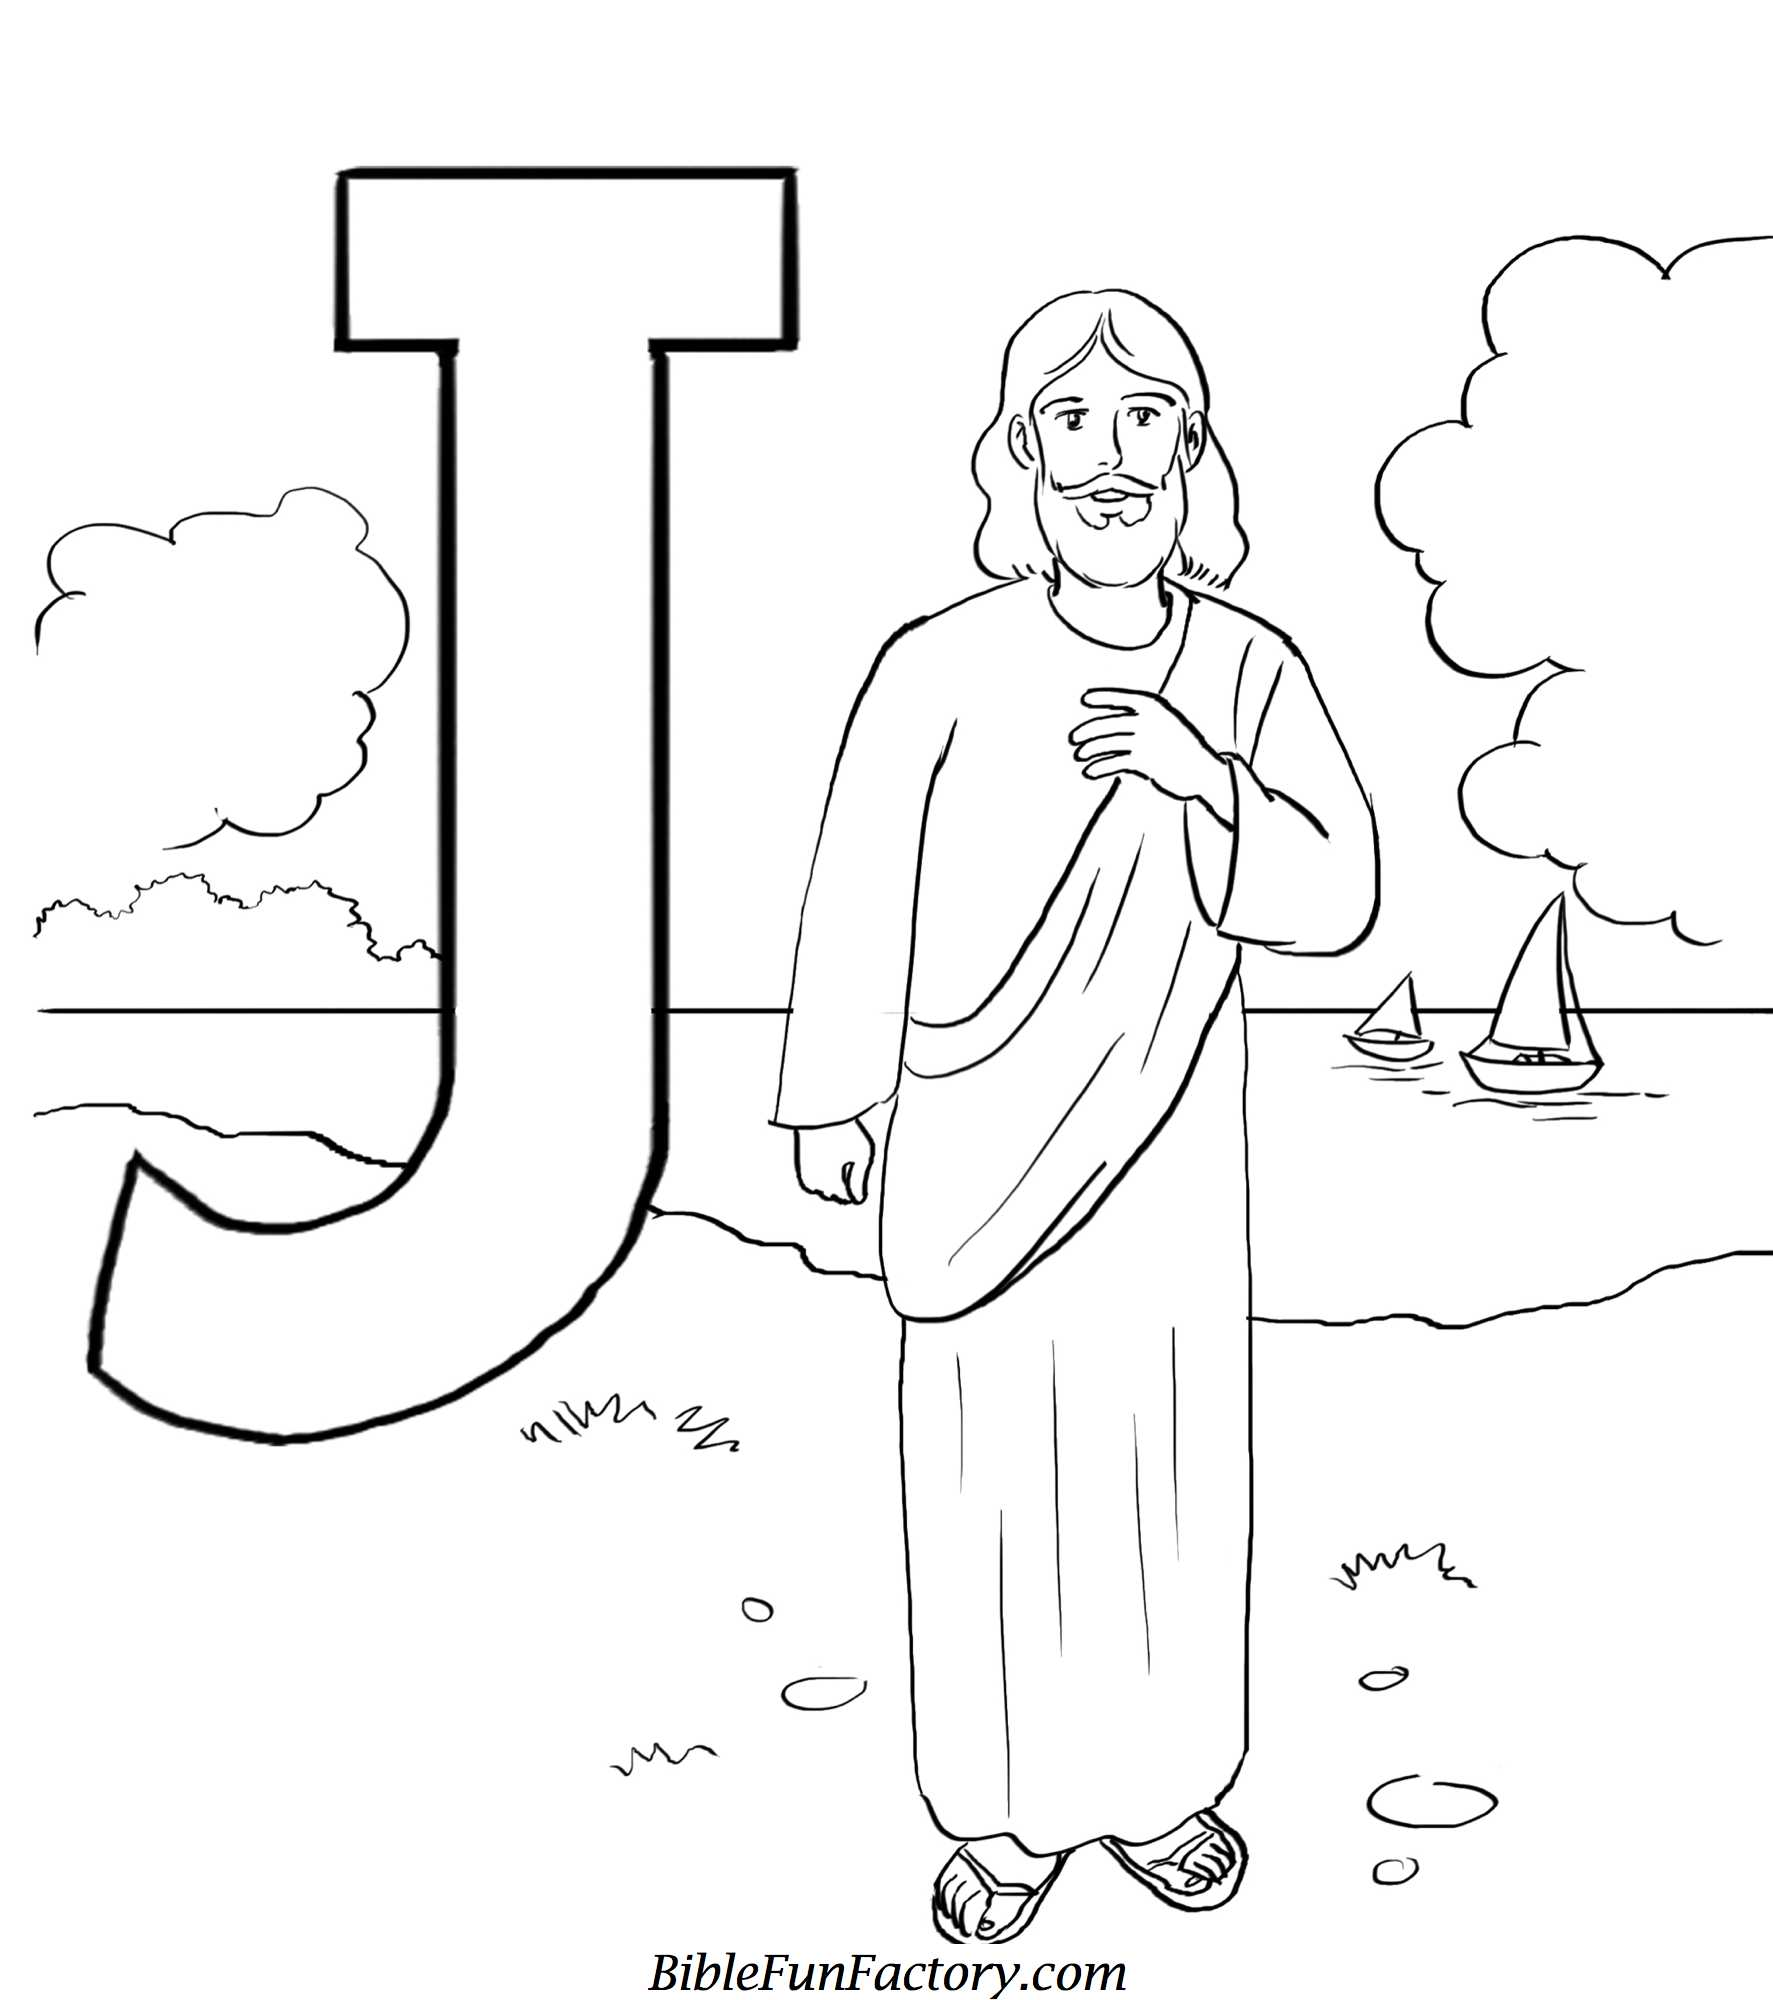 j for jesus coloring page 01